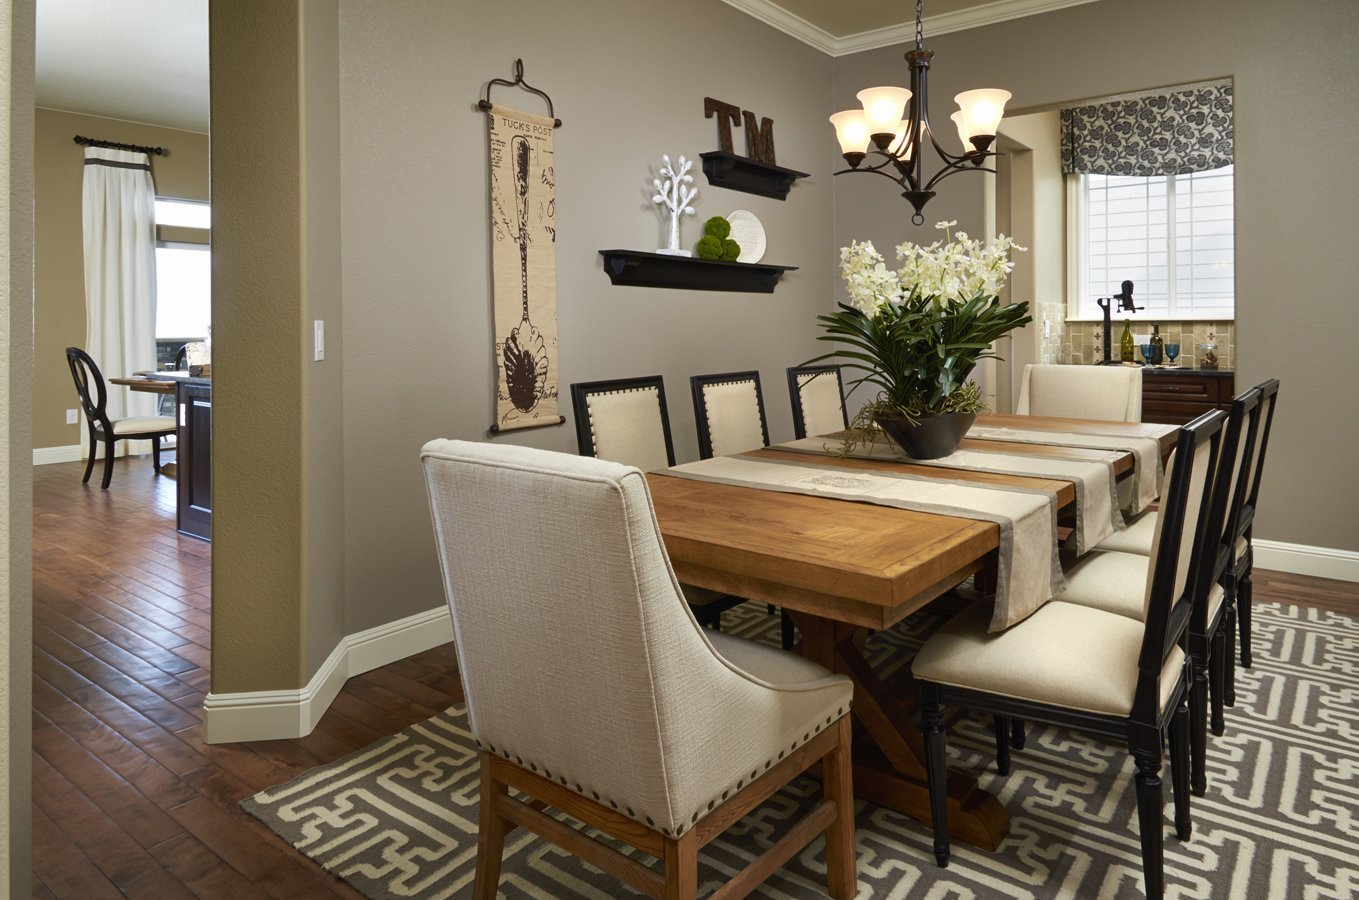 Dining Room Table Setting Ideas - Home Furniture Design